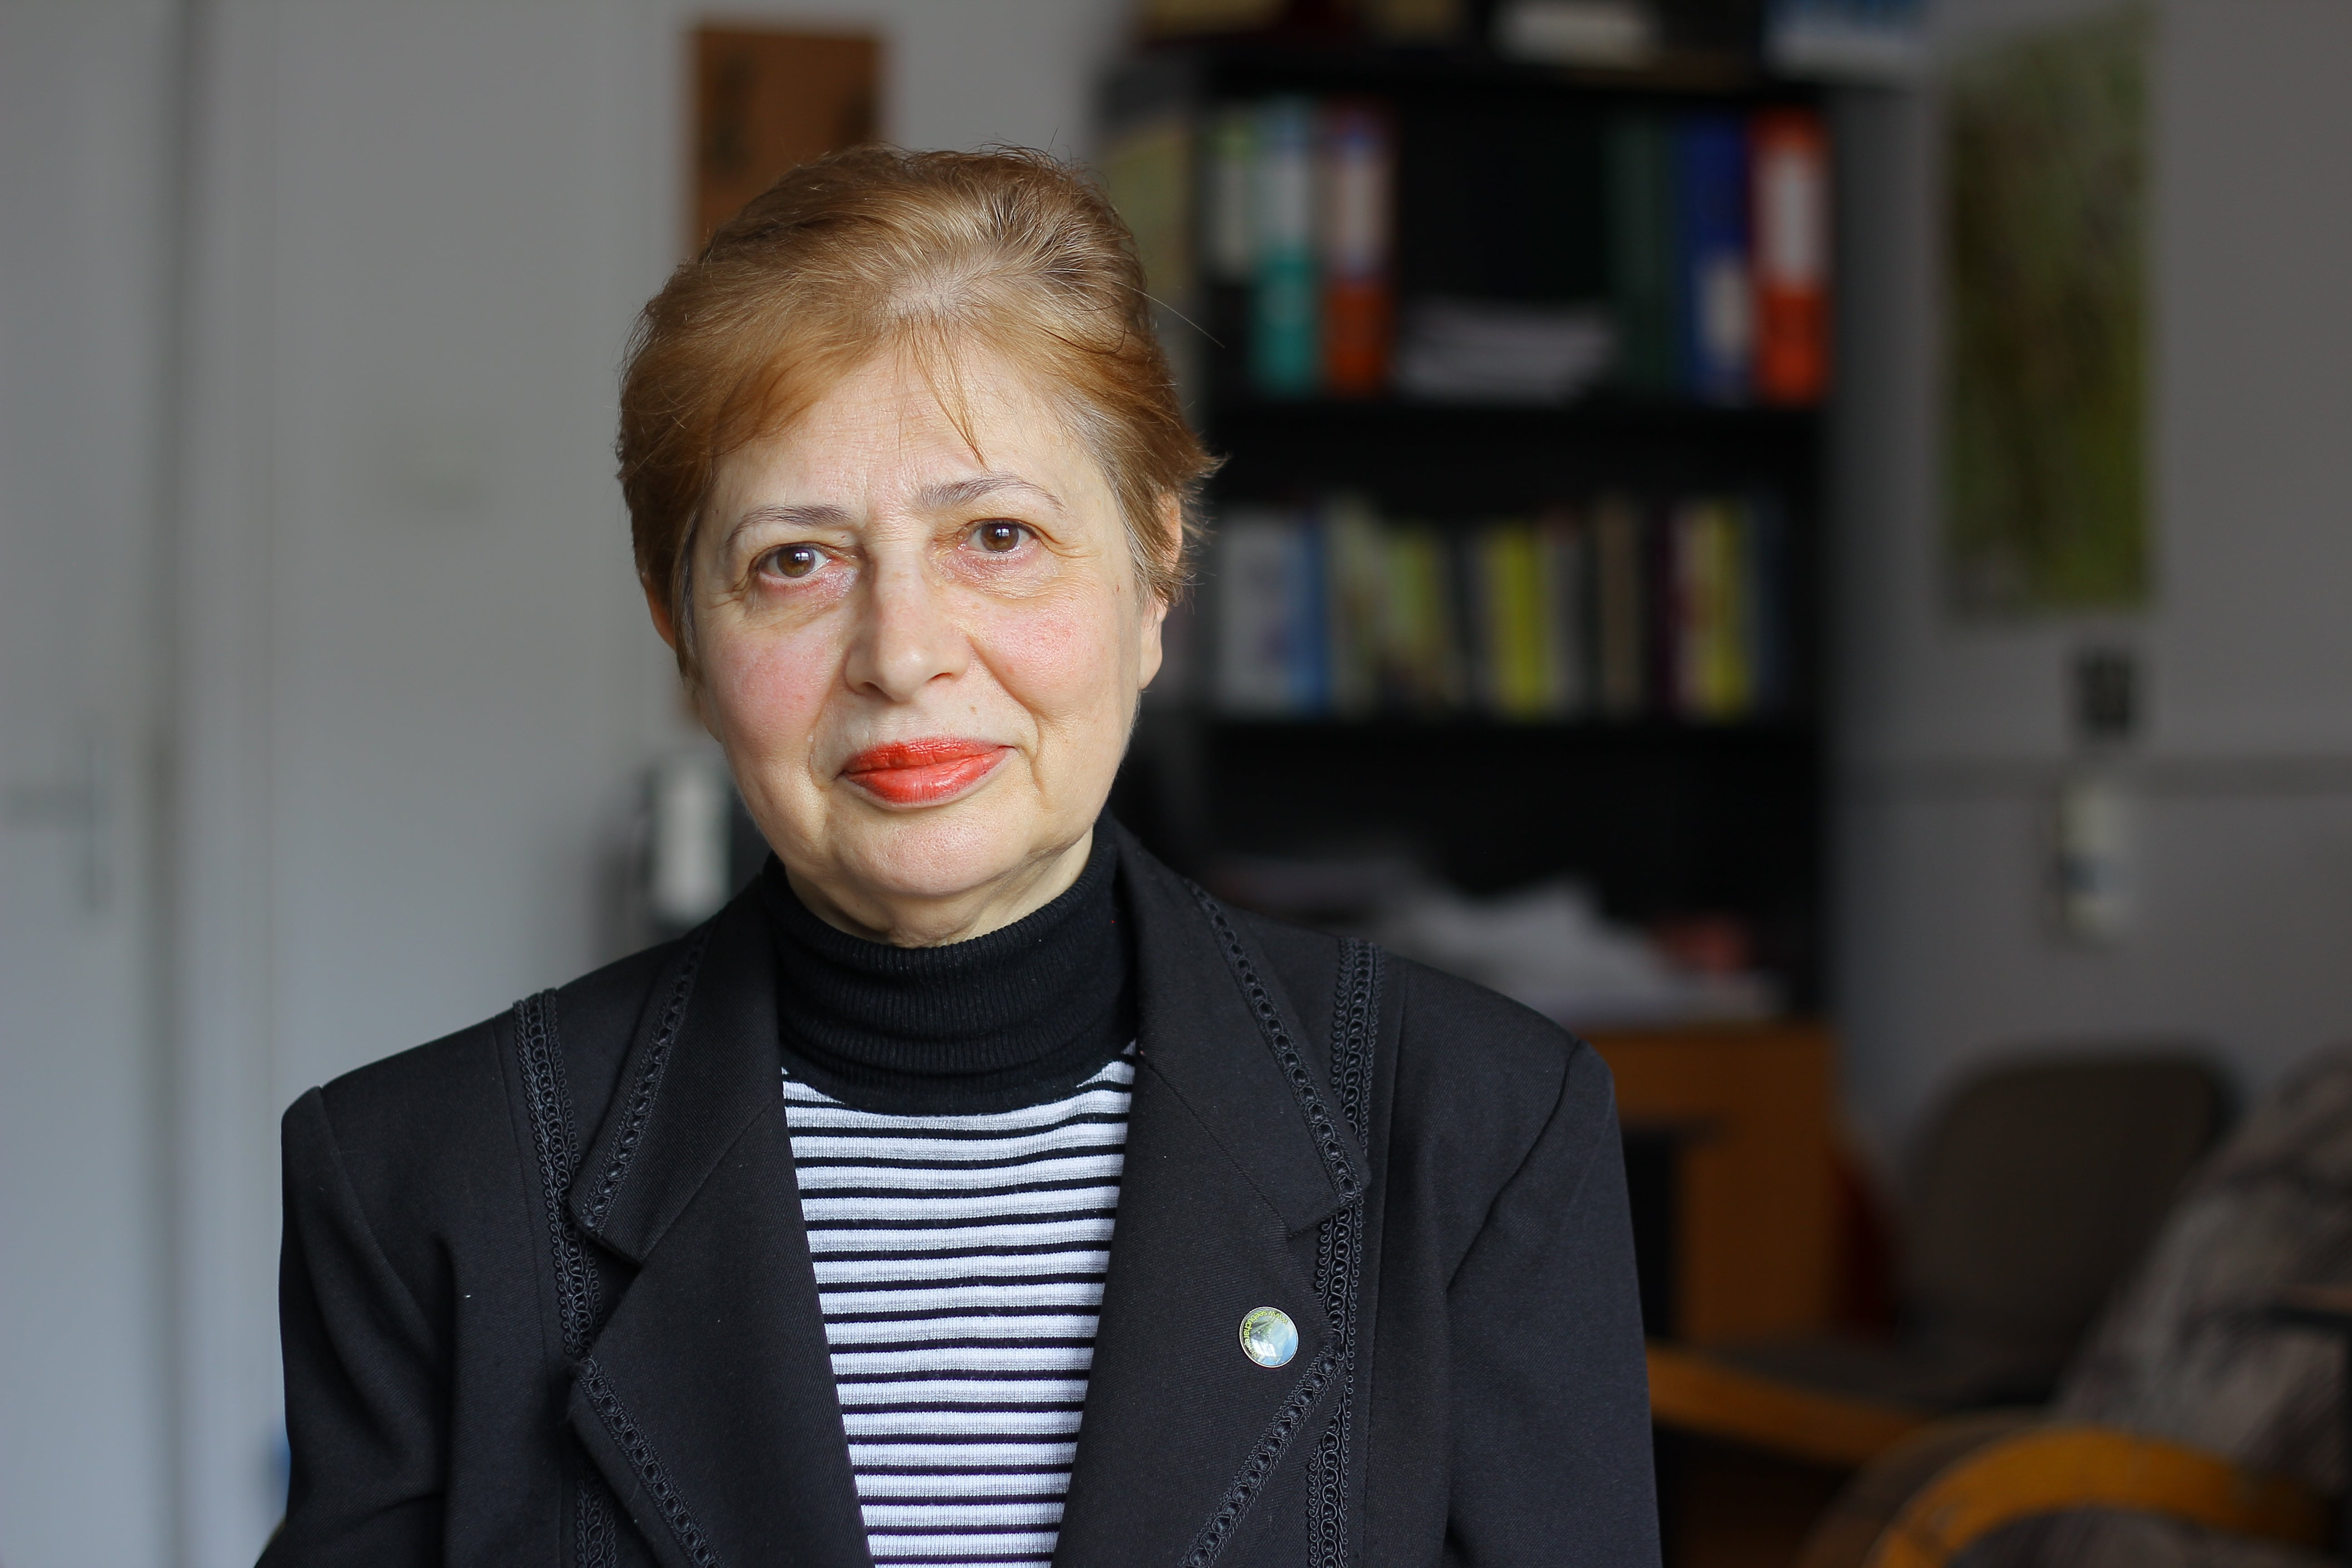 Image of Prof. Dr. Roth